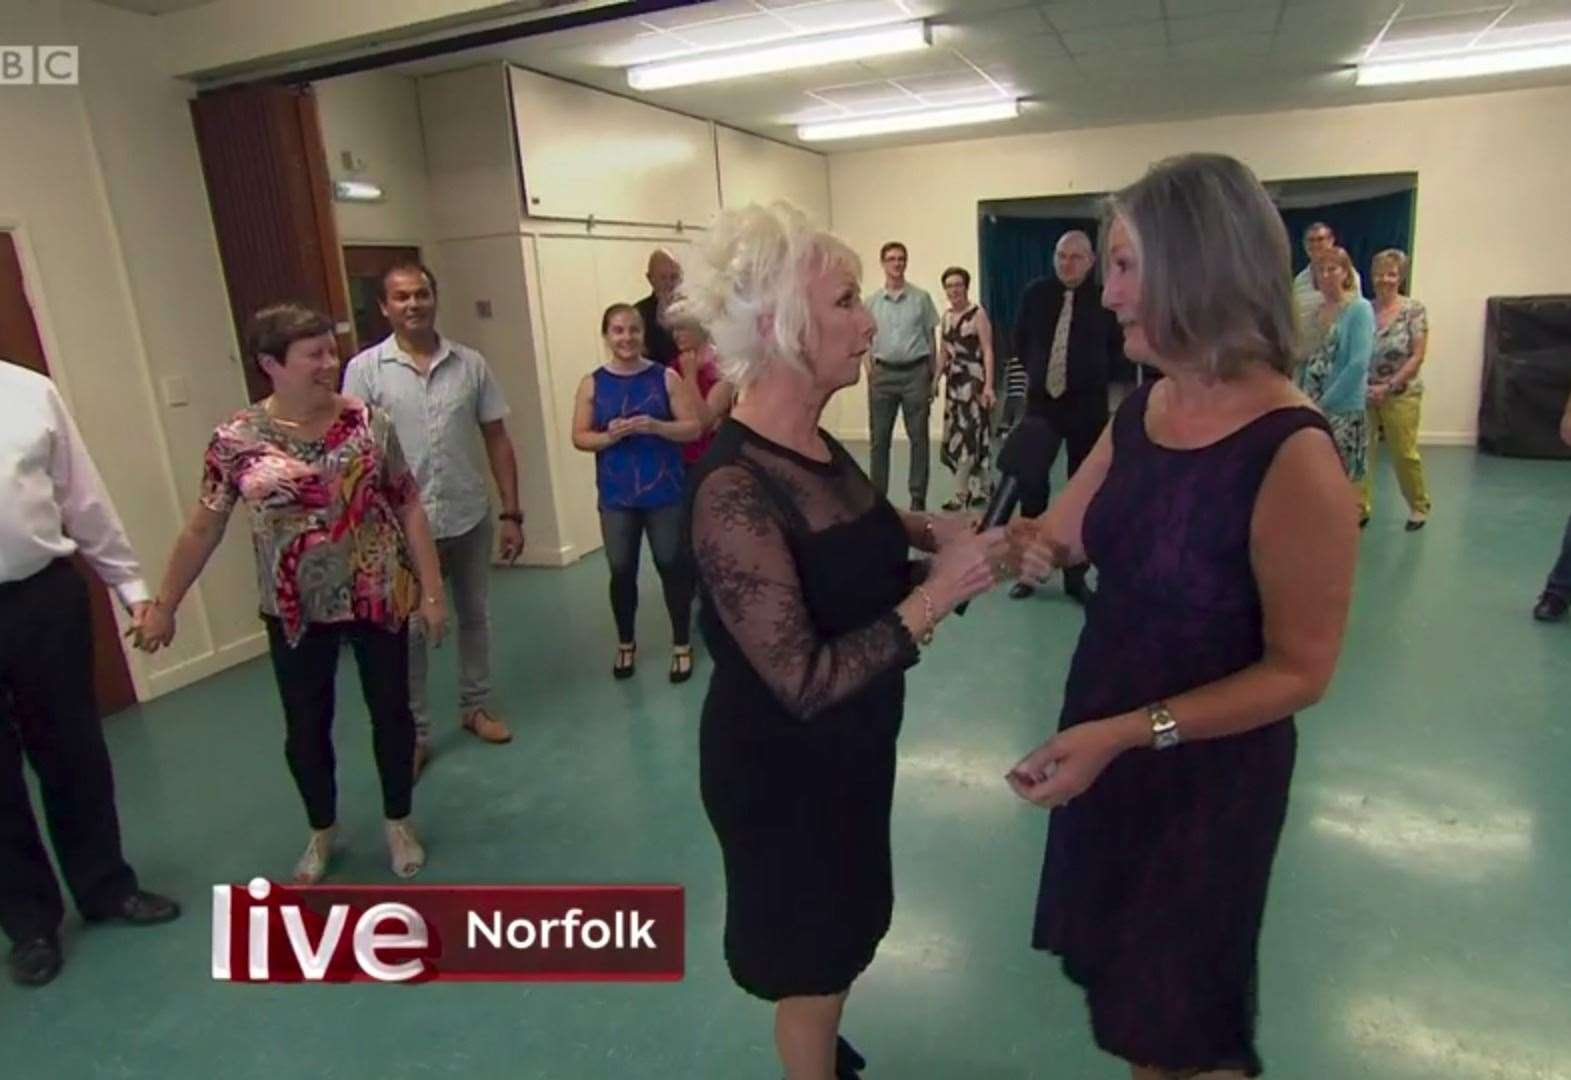 Strictly a surprise for Gaywood dancers as The One Show TV crew shows up to rehearsals